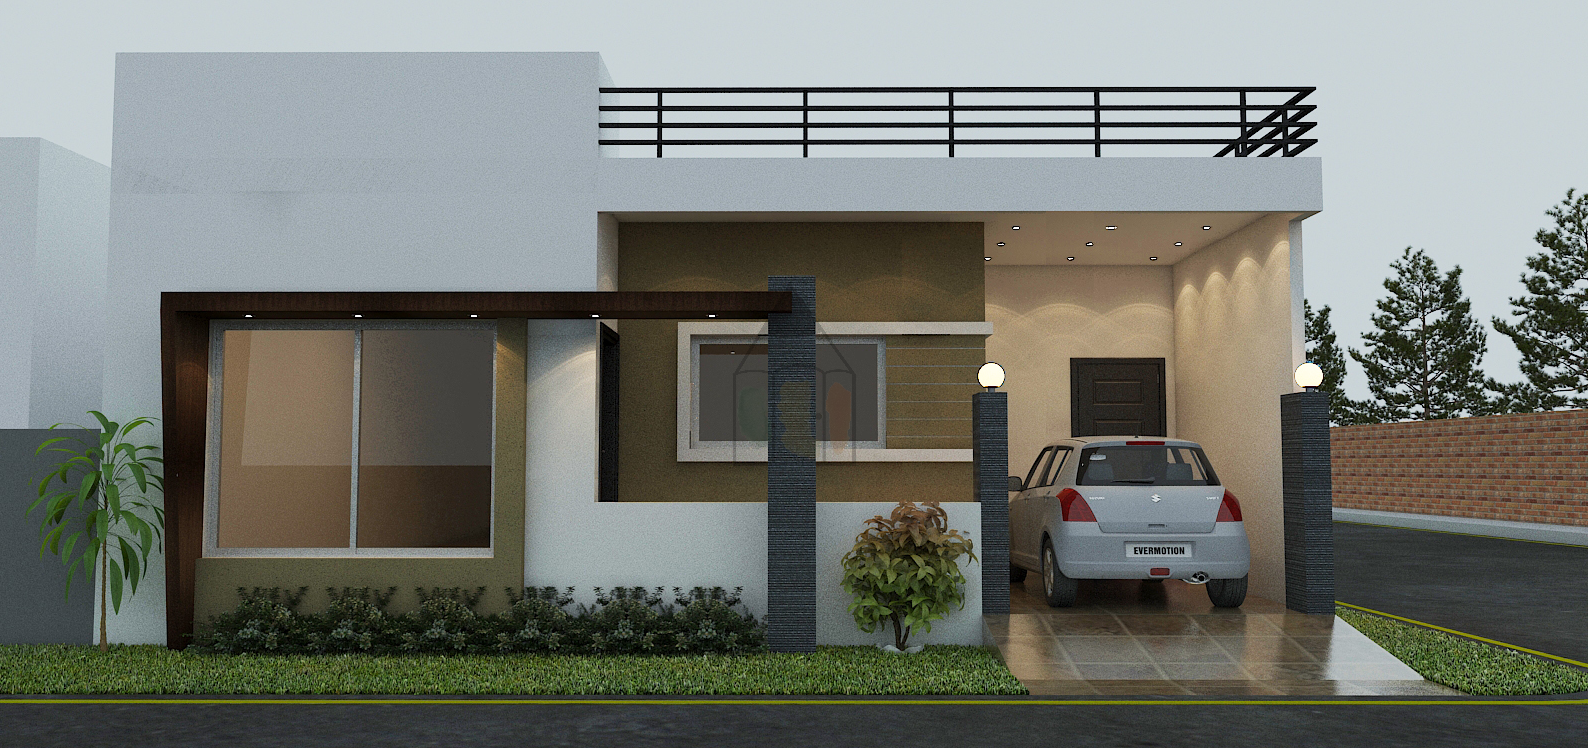 Single storey house design also architectural drawings rh pinterest